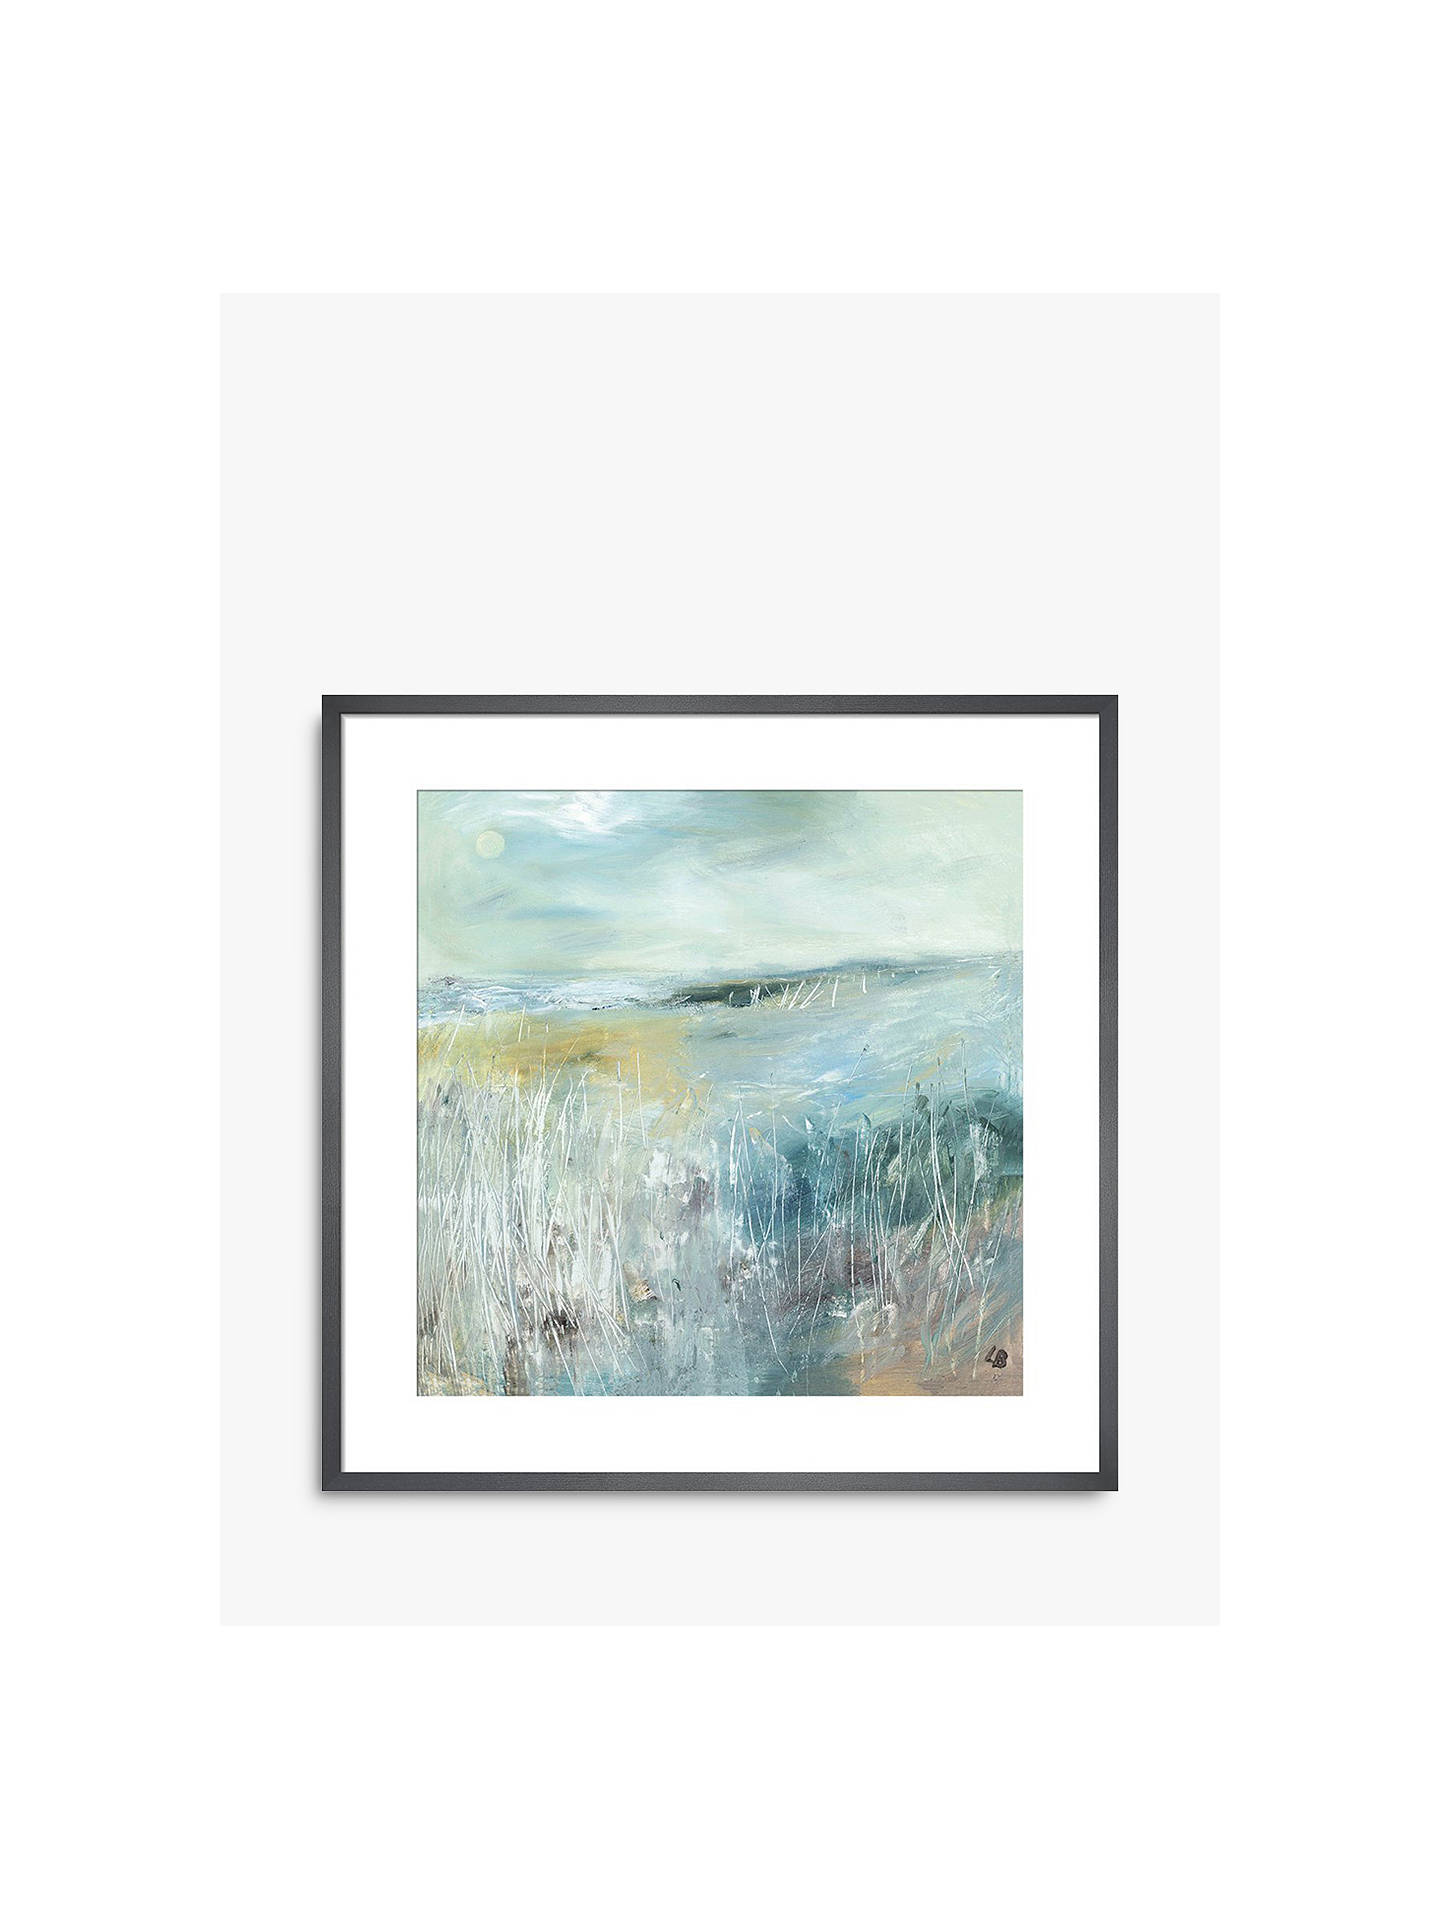 Buy Lesley Birch - Another Winter, Grey Framed Print, 40 x 40cm Online at johnlewis.com